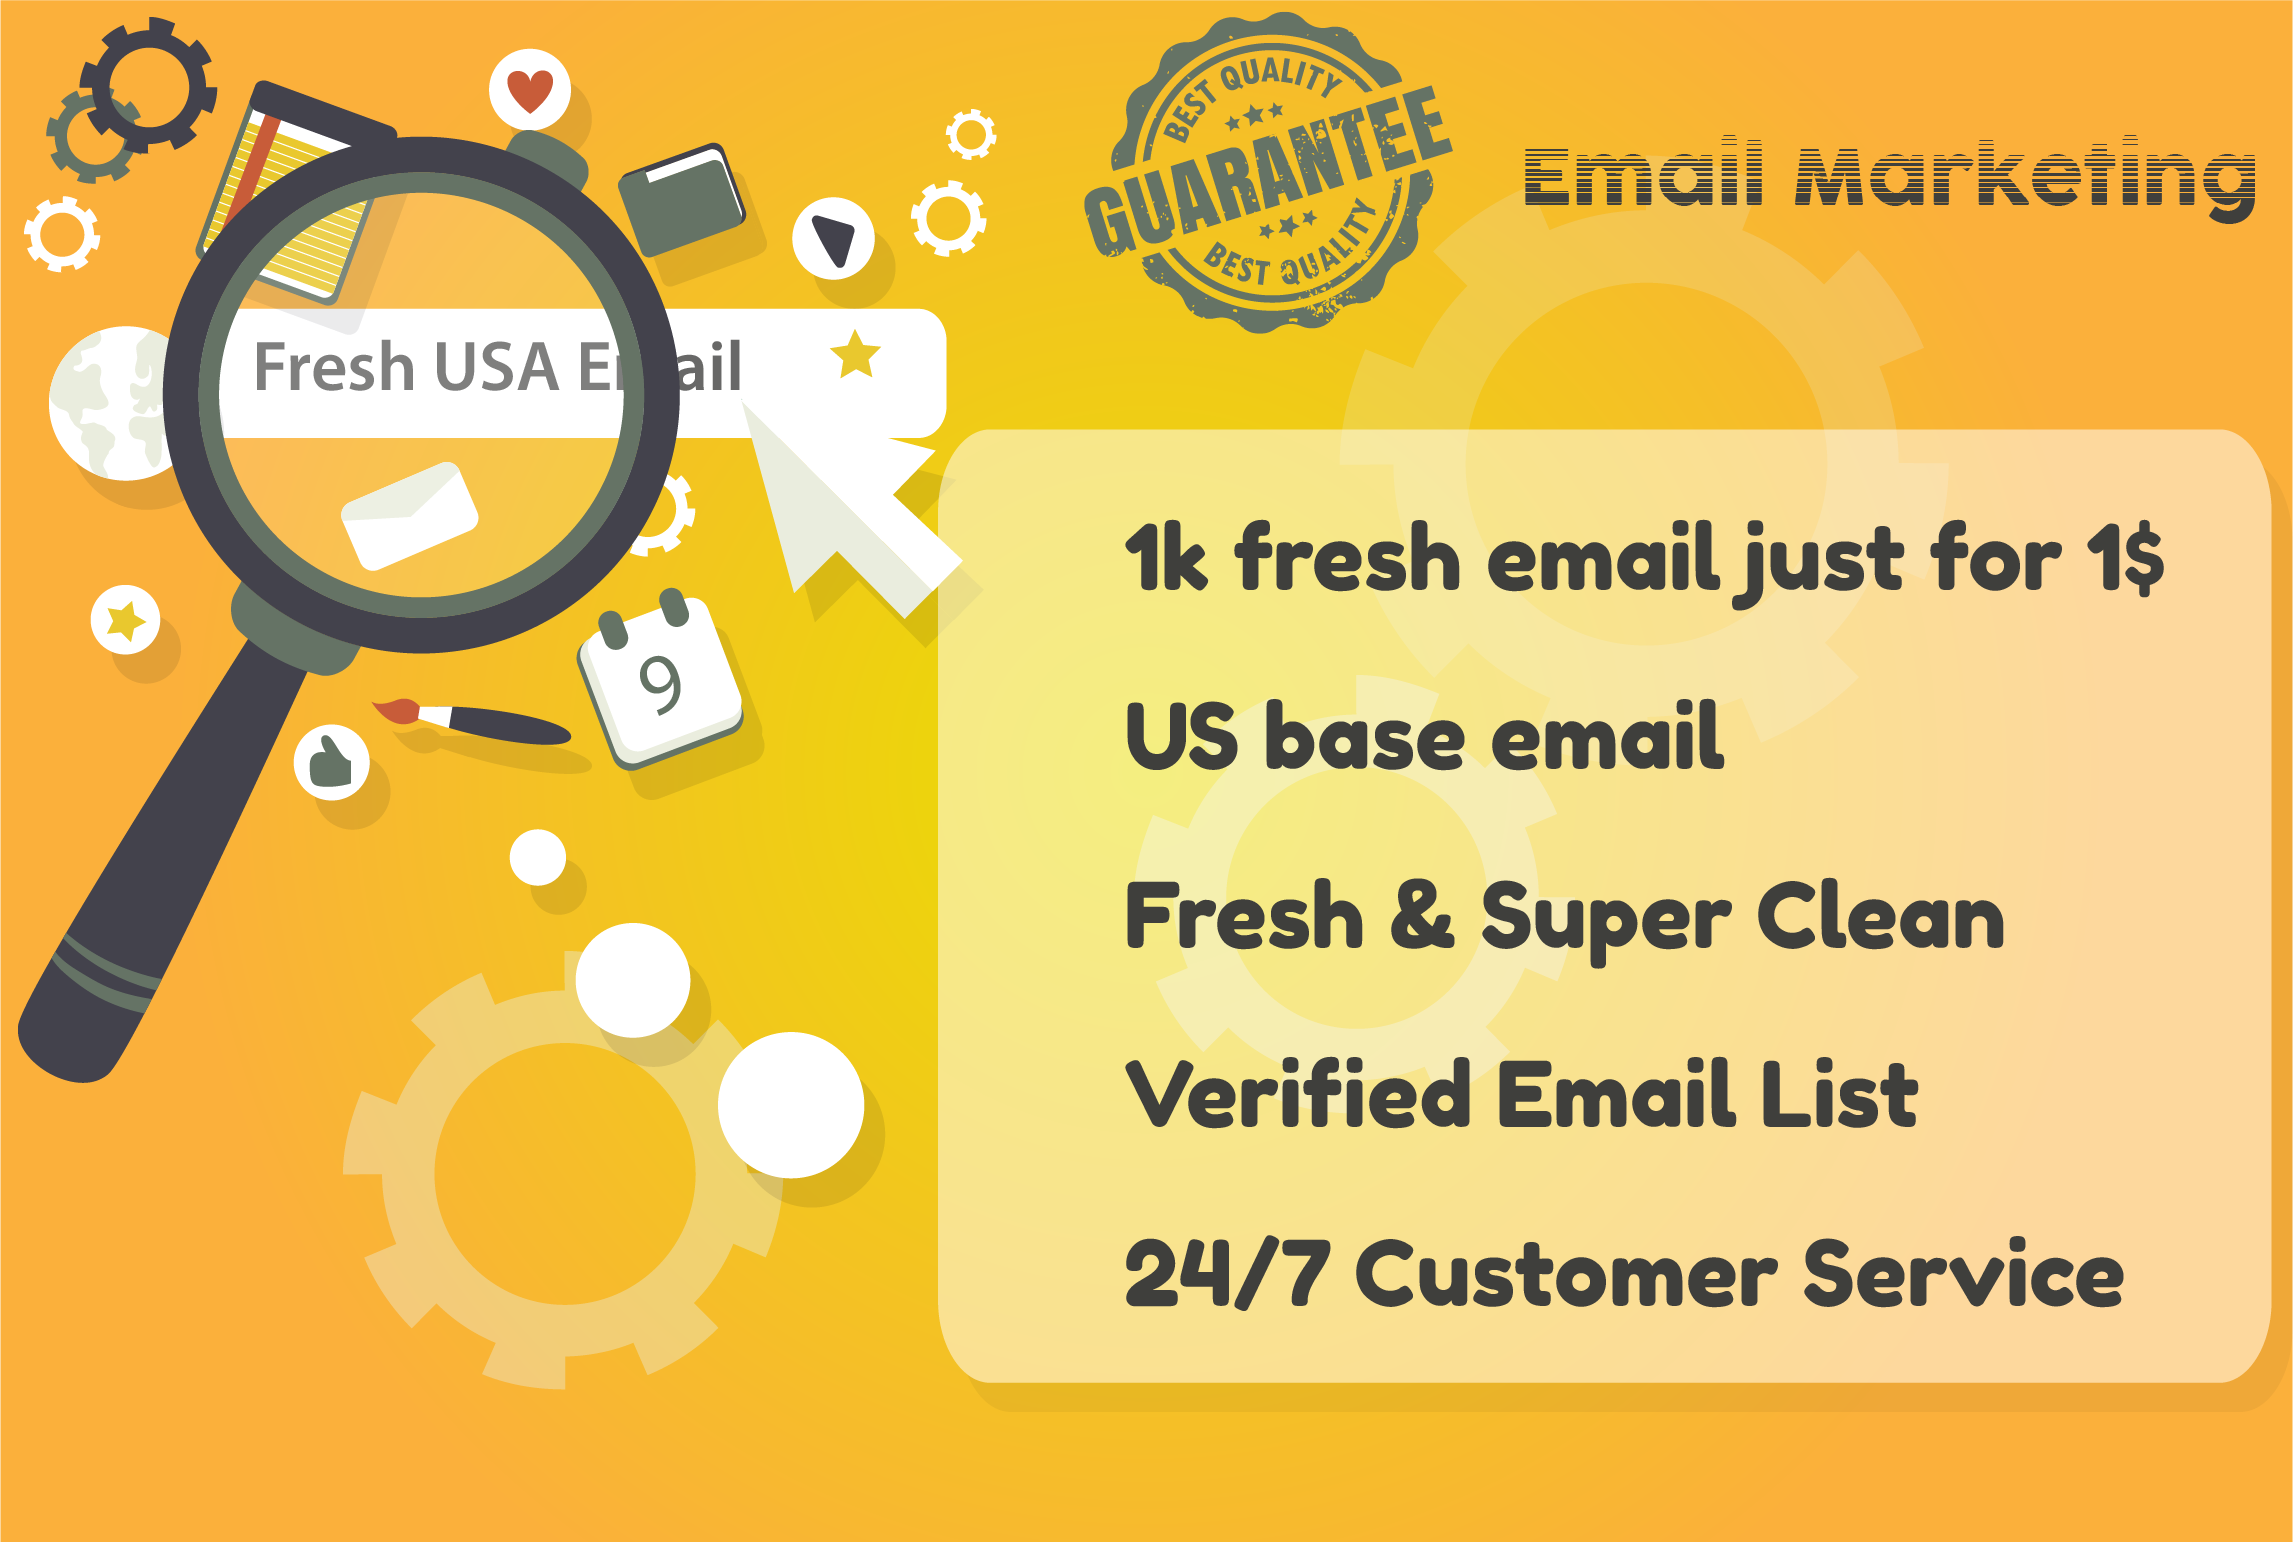 I will provide 1k us base fresh and valid email